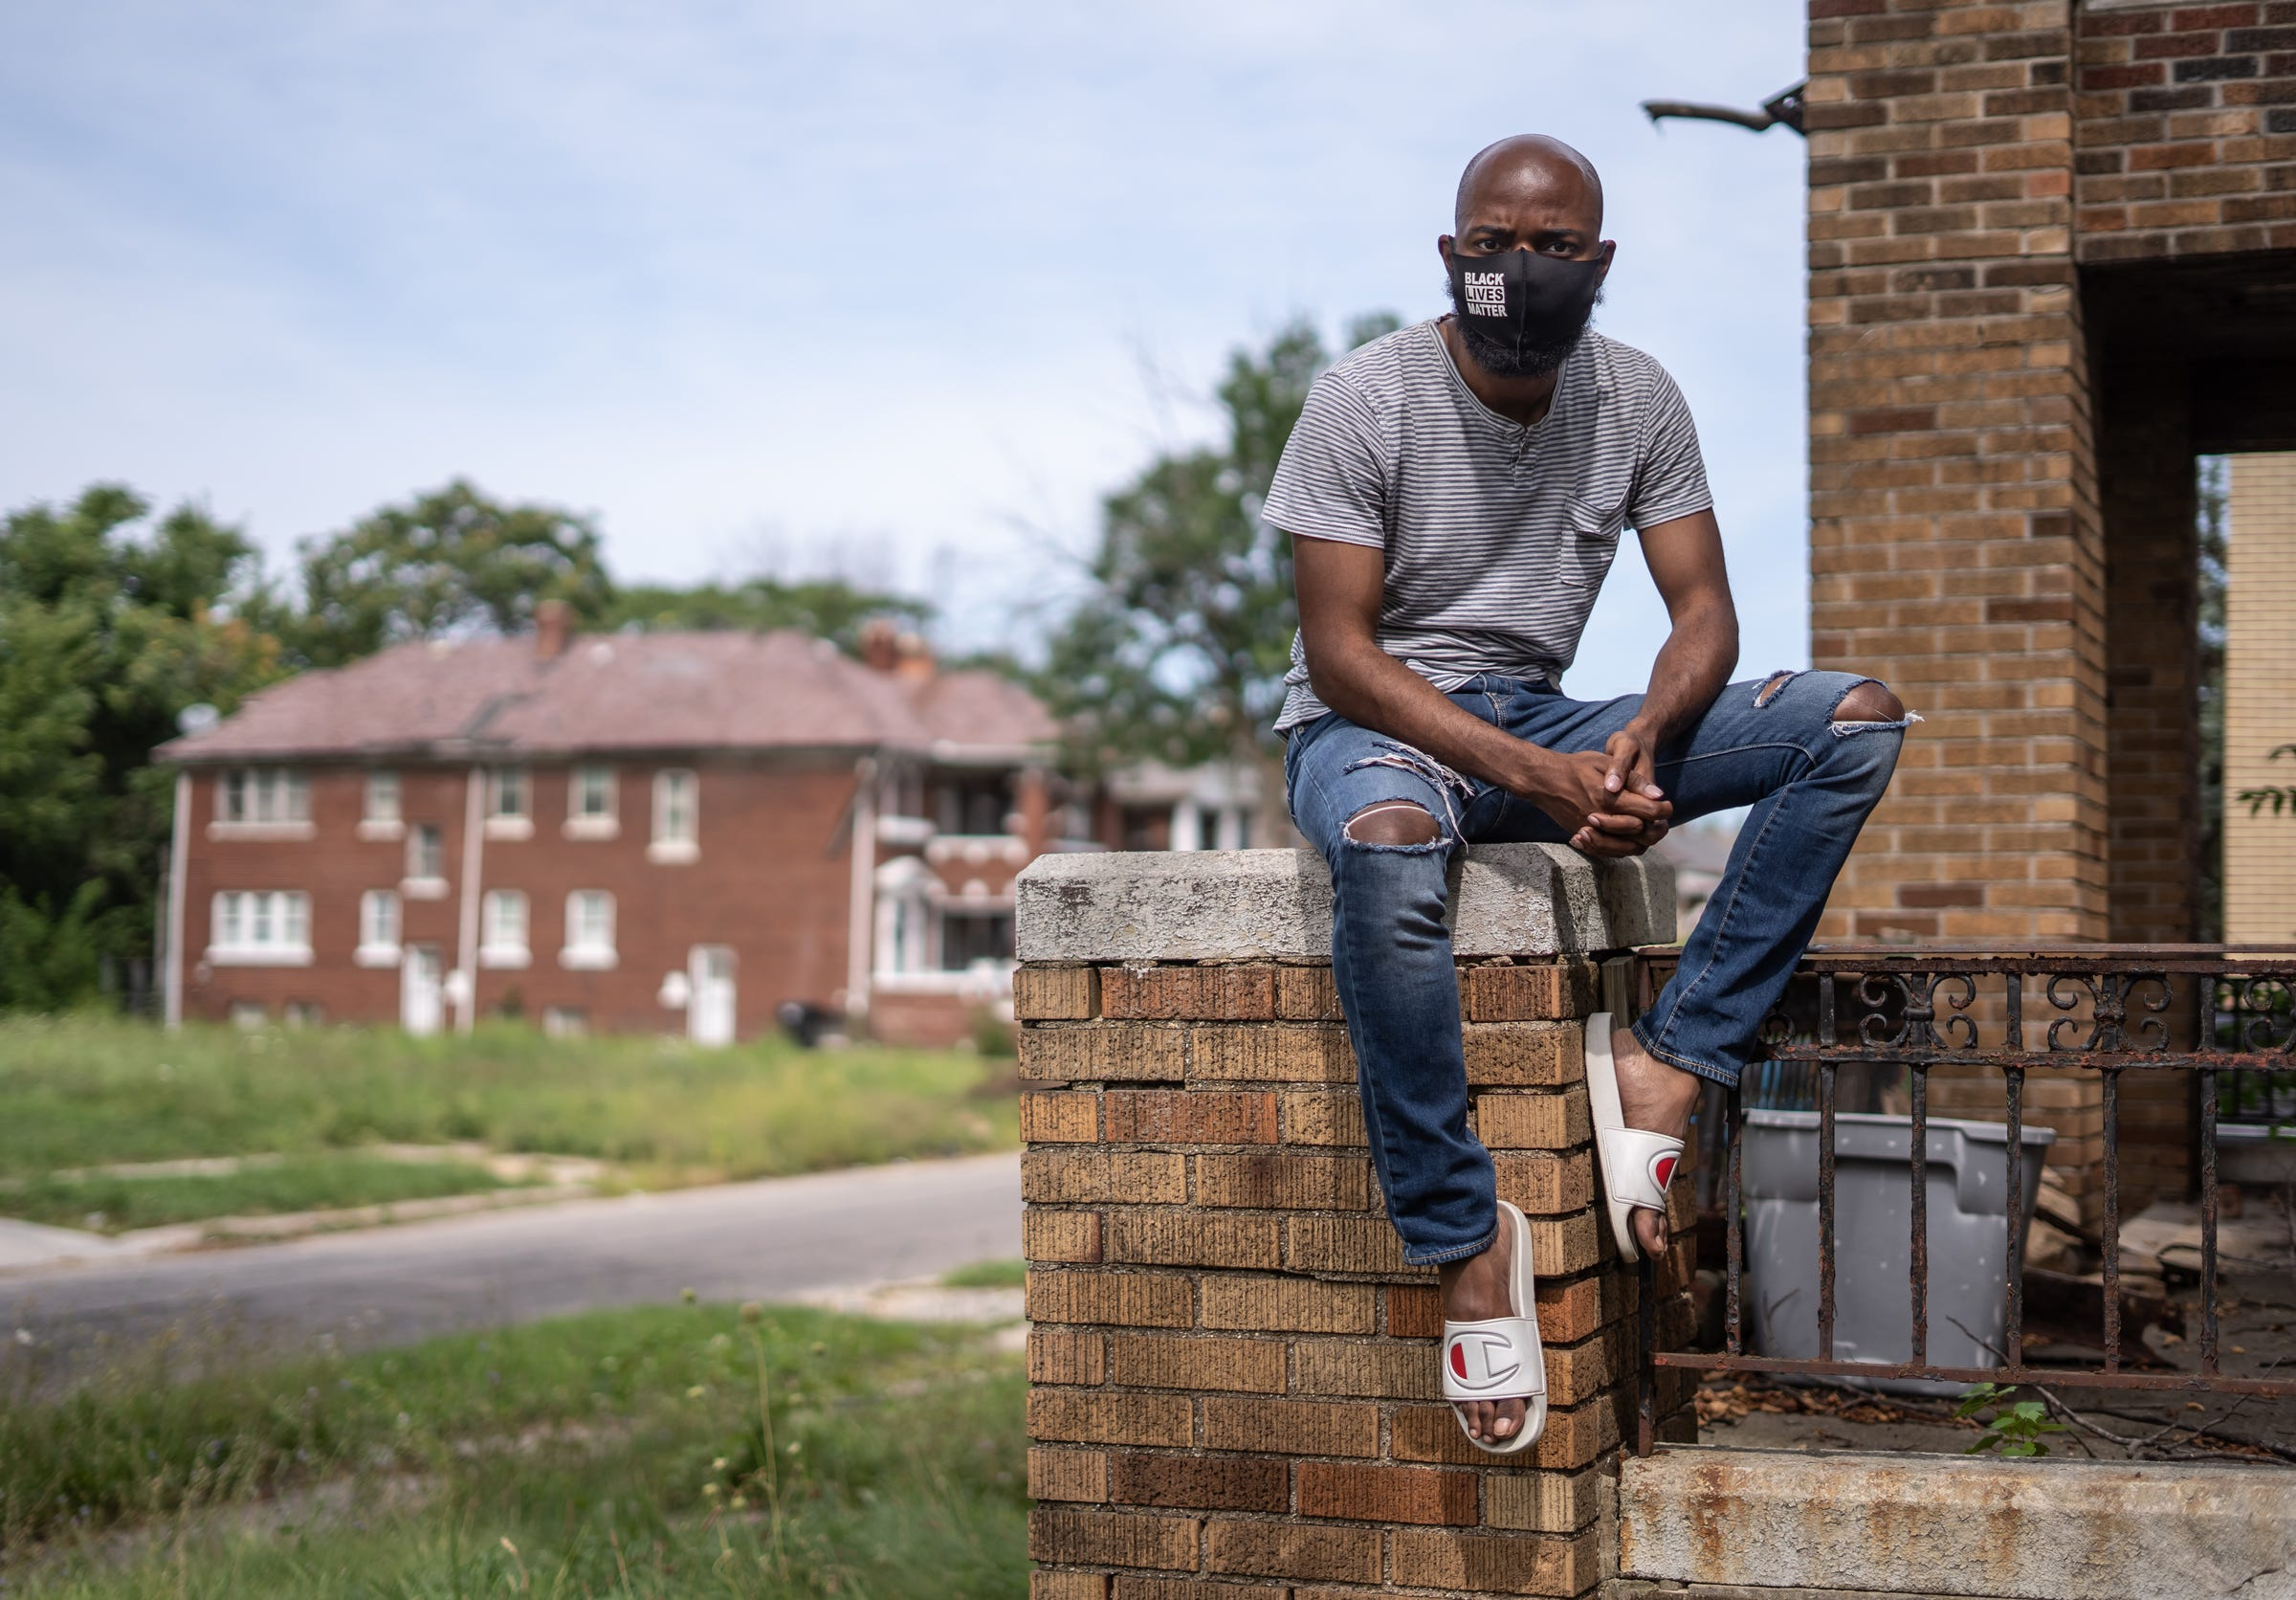 """Fernando Willis Jr. of Detroit poses for a photo at the home he grew up in on Gladstone Street on Detroit's North side on Tuesday, August 25, 2020. Willis Jr. got involved with the Detroit Will Breathe movement after the pandemic made it unsafe for him to put volunteers at risk while feeding the homeless with his nonprofit Senseless Acts. """"Some people believe its too much to risk and why do it anyway? Because here we are it's two thousand twenty and we are still fighting for things that we've been fighting for when I was born, before I was born, before my mom was born. They talk about in the church generational curses. This is the biggest one I've ever seen. Racism, the injustice, the issues that we still face to this day. So I understand that some of my people cannot fight. Some of my people don't understand why fight anyway. Some feel powerless. Some feel conditioned and I know what that's like. I'm not this person who who believes. I know so much. I know it all. I'm still learning as I go,"""" Willis Jr. said. """"I fight for those who are not fighting back and I carry them on my back and I carry that burden. I carry that responsibility with me and I carry on with my other brothers and sisters who are physically there, but also not there. They are always with us whether it be investors, whether it be someone to say yes Black lives do matter. And that's why I march. I believe Detroit will win this fight. Detroit deserves better. My people deserve better and I know that Detroit will breathe. It's a little suffocated right now because of the foolishness, because of the evil and toxicity of the city of Detroit and how the leadership is handling everything. A little suffocating. But we will breathe. We will breathe, and my people will be free."""""""